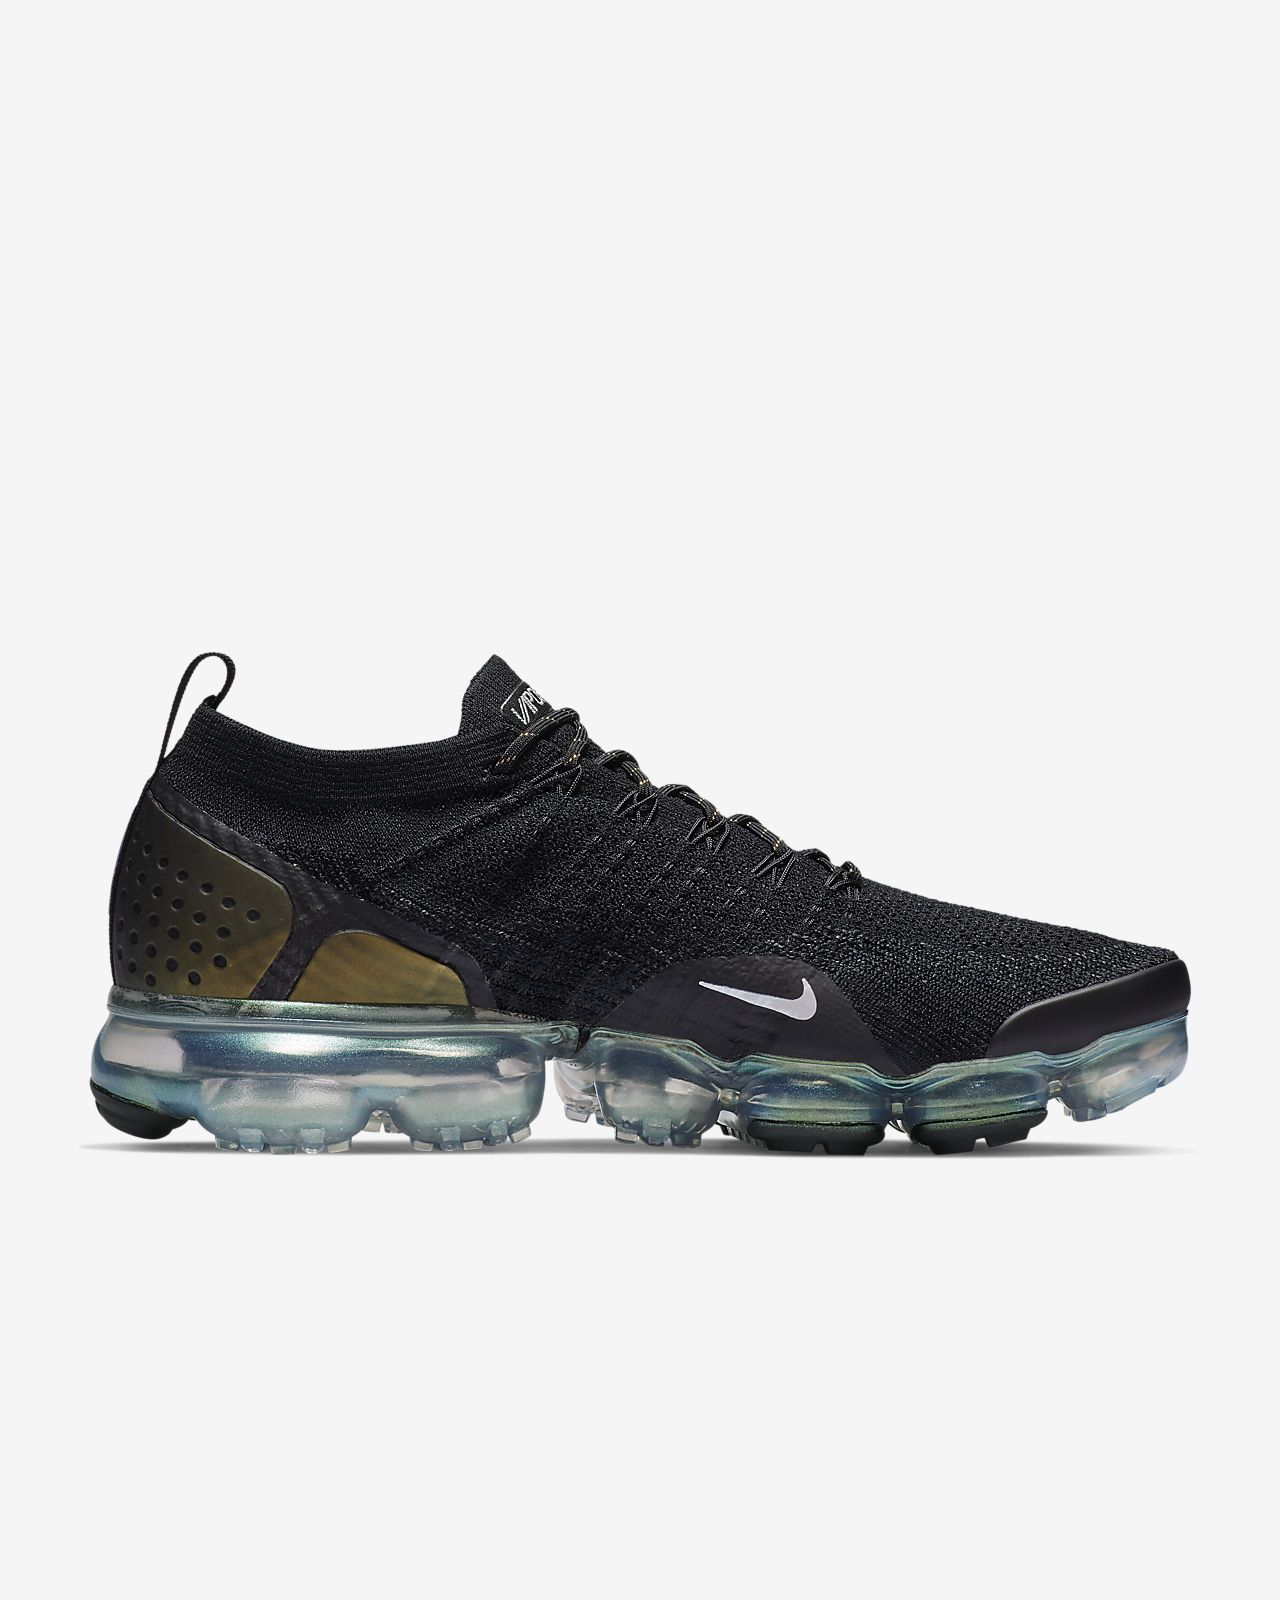 new product c70fc ad0f2 ... Nike Air VaporMax Flyknit 2 Schuh